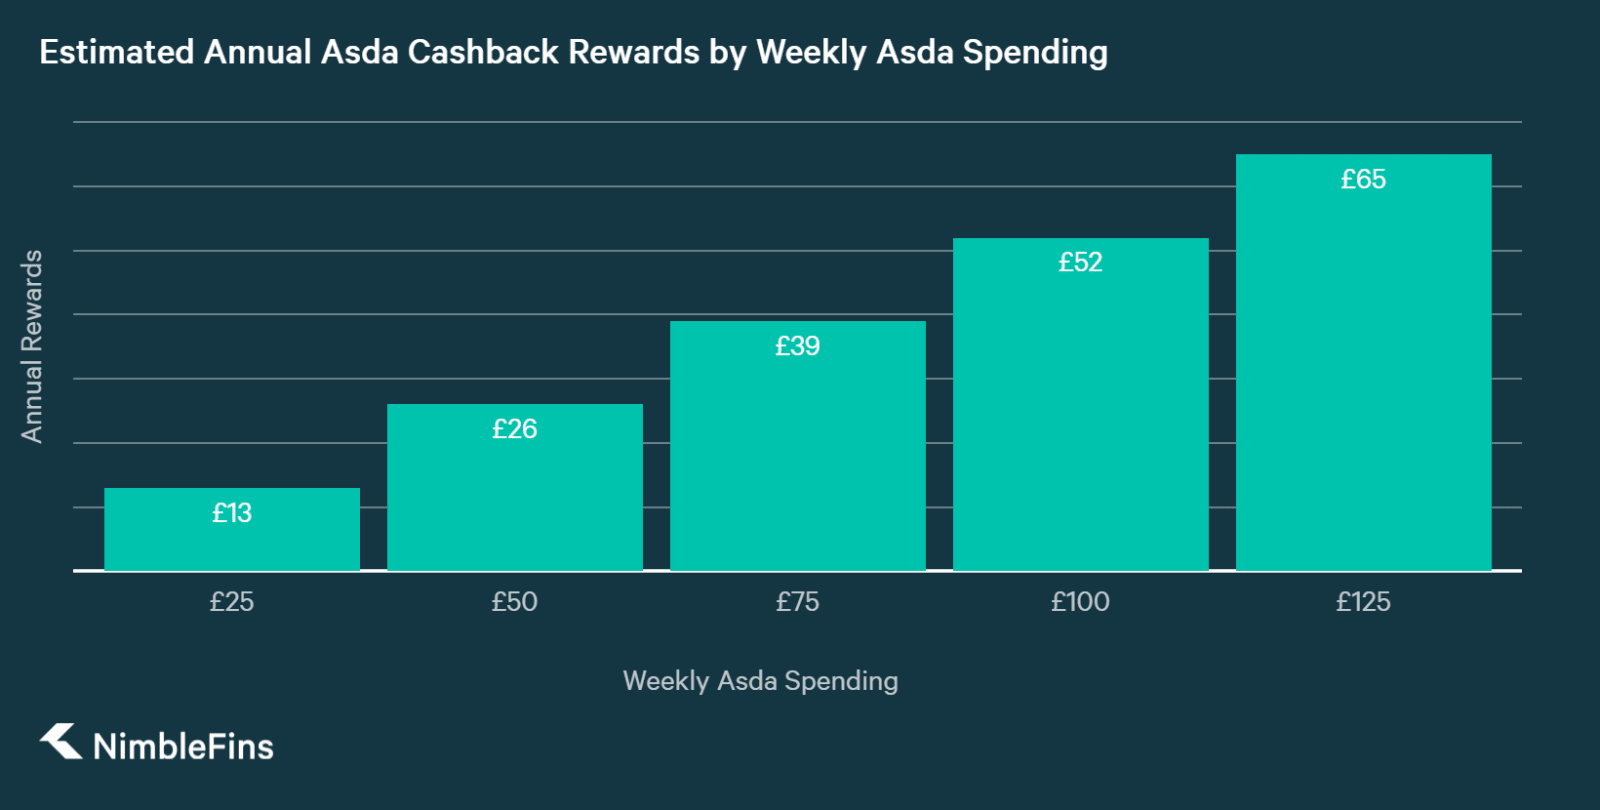 chart showing Potential Rewards on Asda Cashback Card Based on Weekly Asda Spending